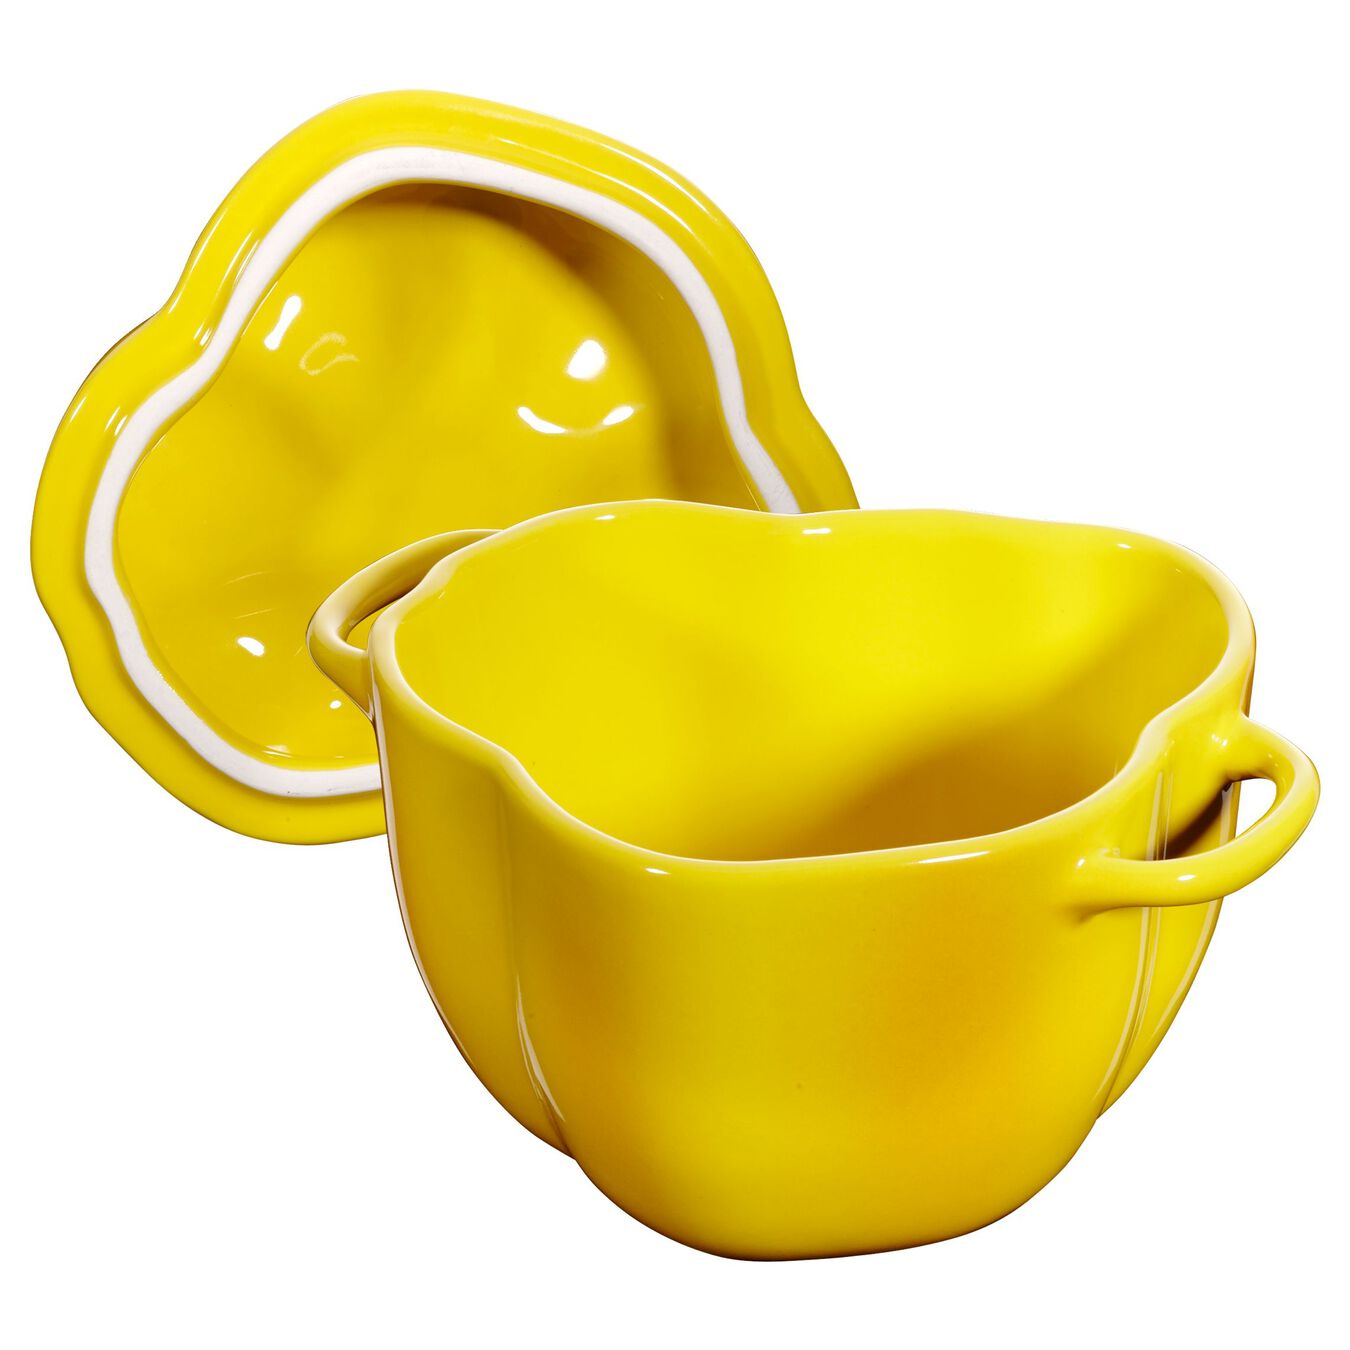 Cocotte peperone - 11 cm, Gialla,,large 4